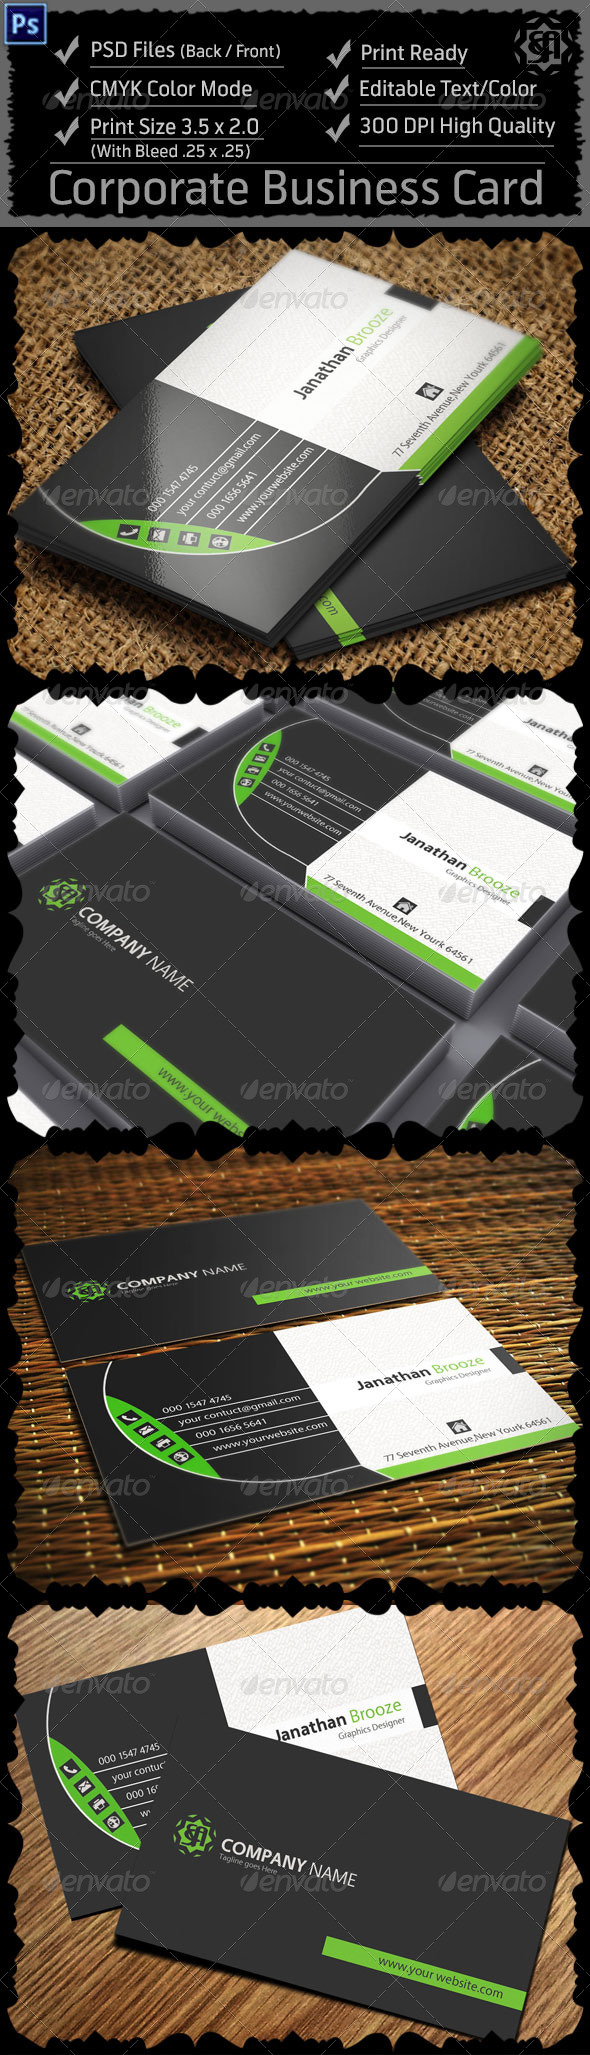 GraphicRiver Corporate Business Card 8325761